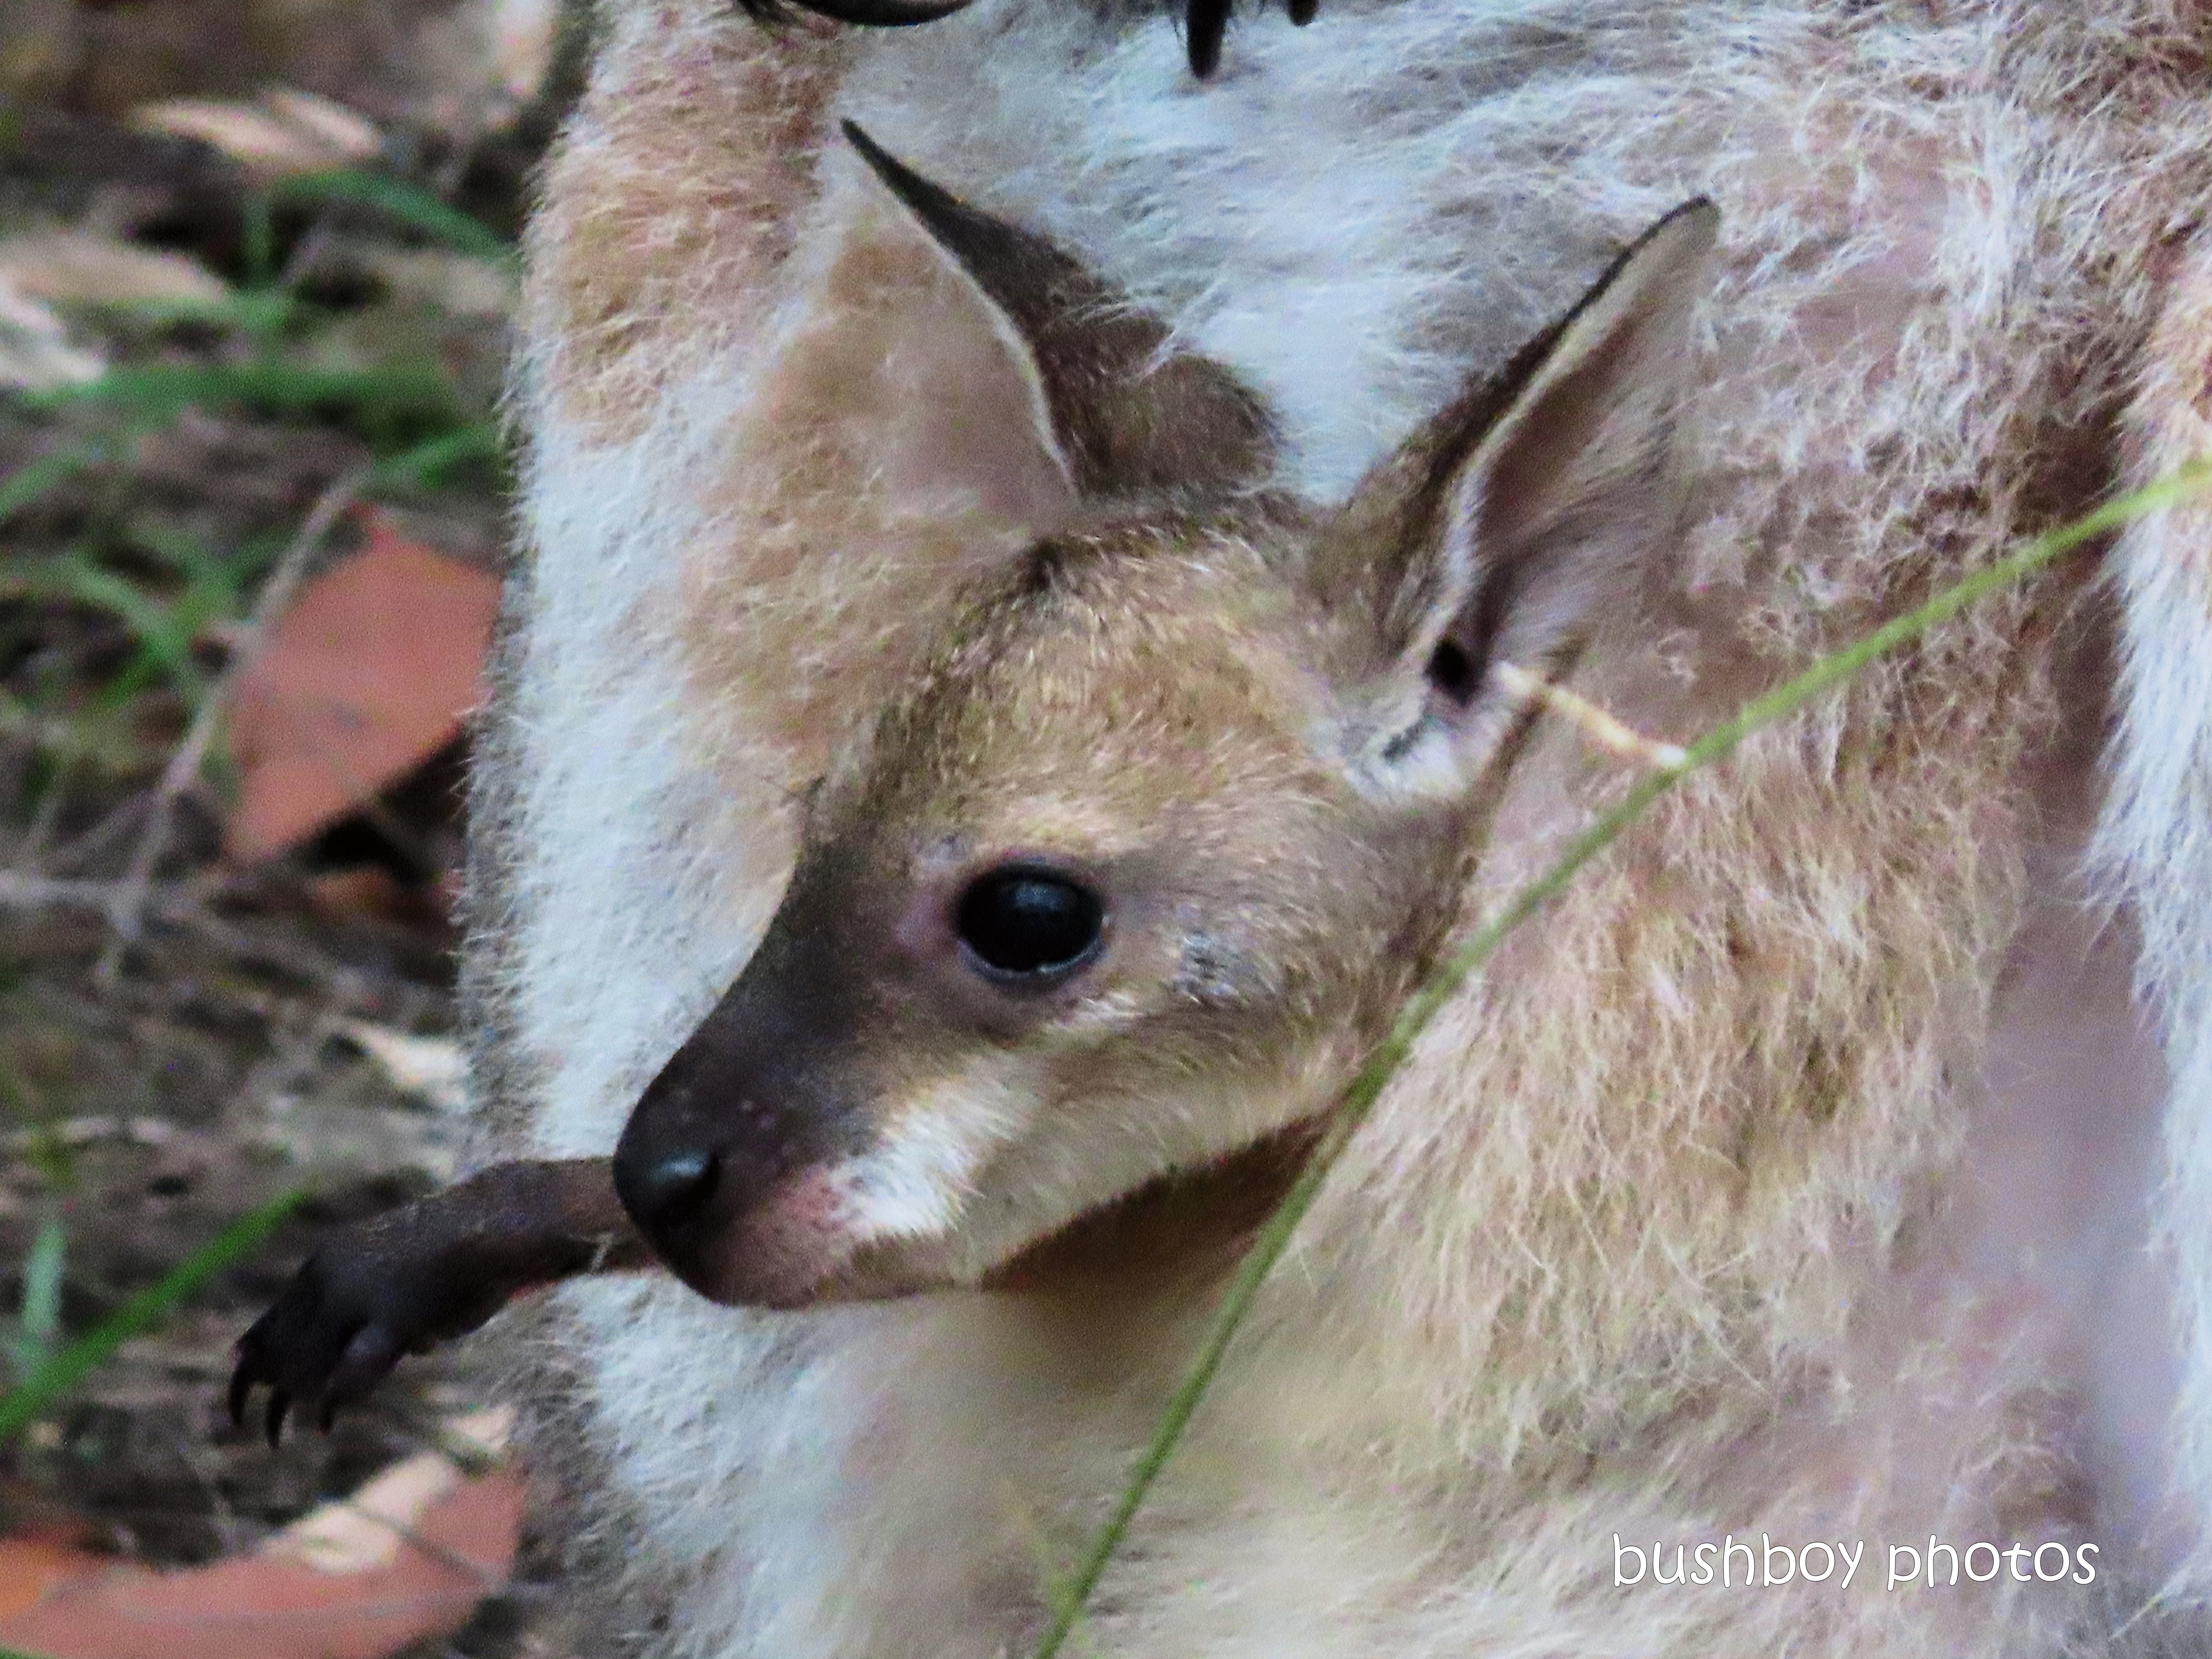 joey_red-necked wallaby_garden_named_home_jackadgery_feb 2020